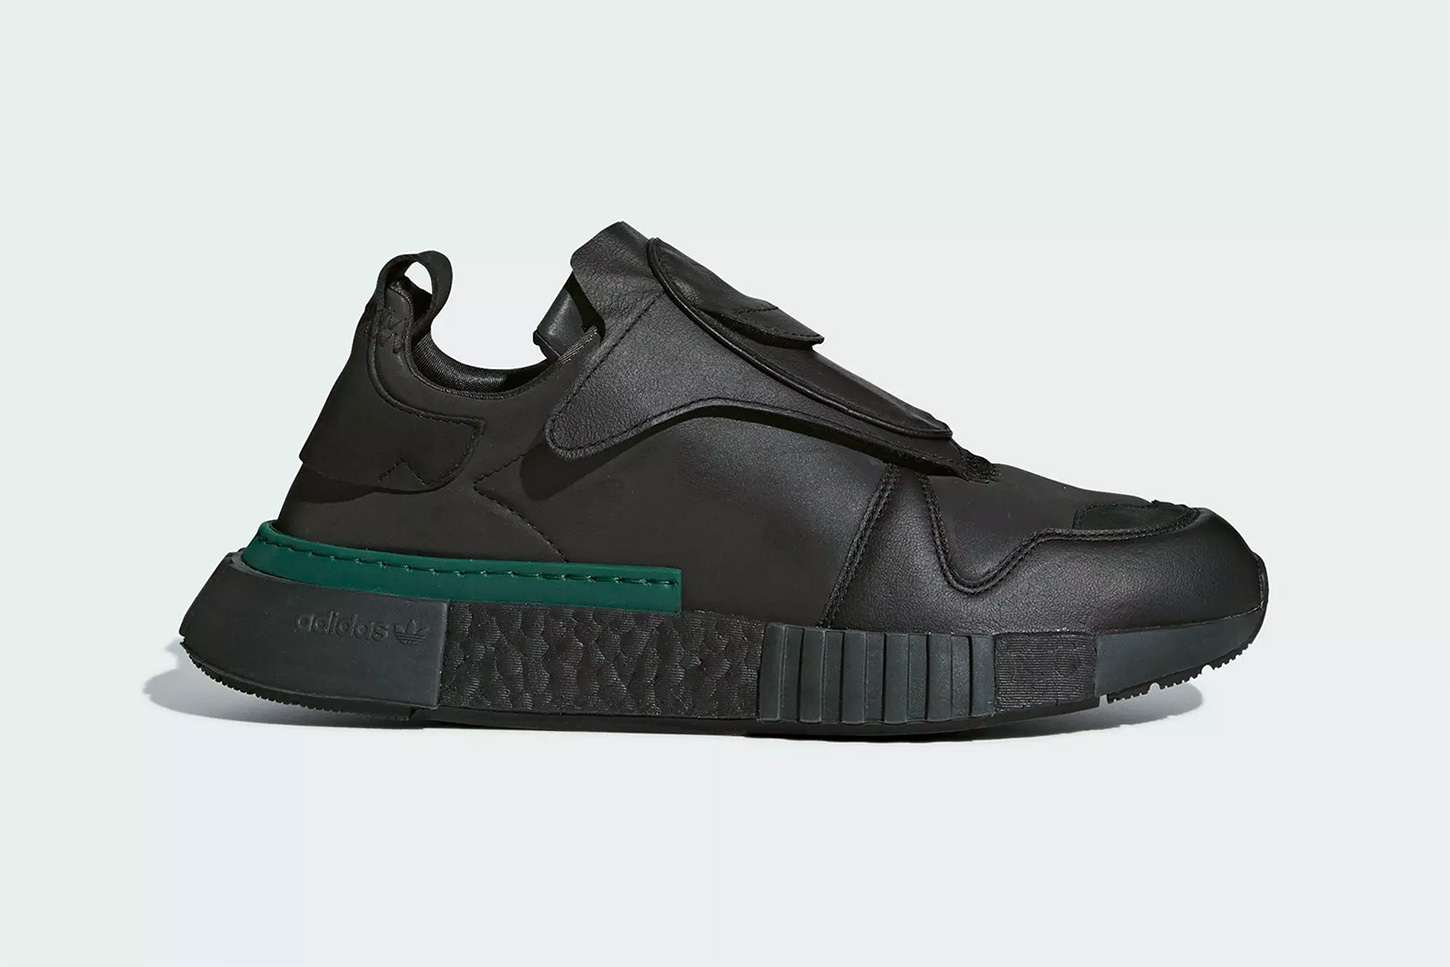 official photos 3d7e3 f0adb adidas Originals Futurepacer